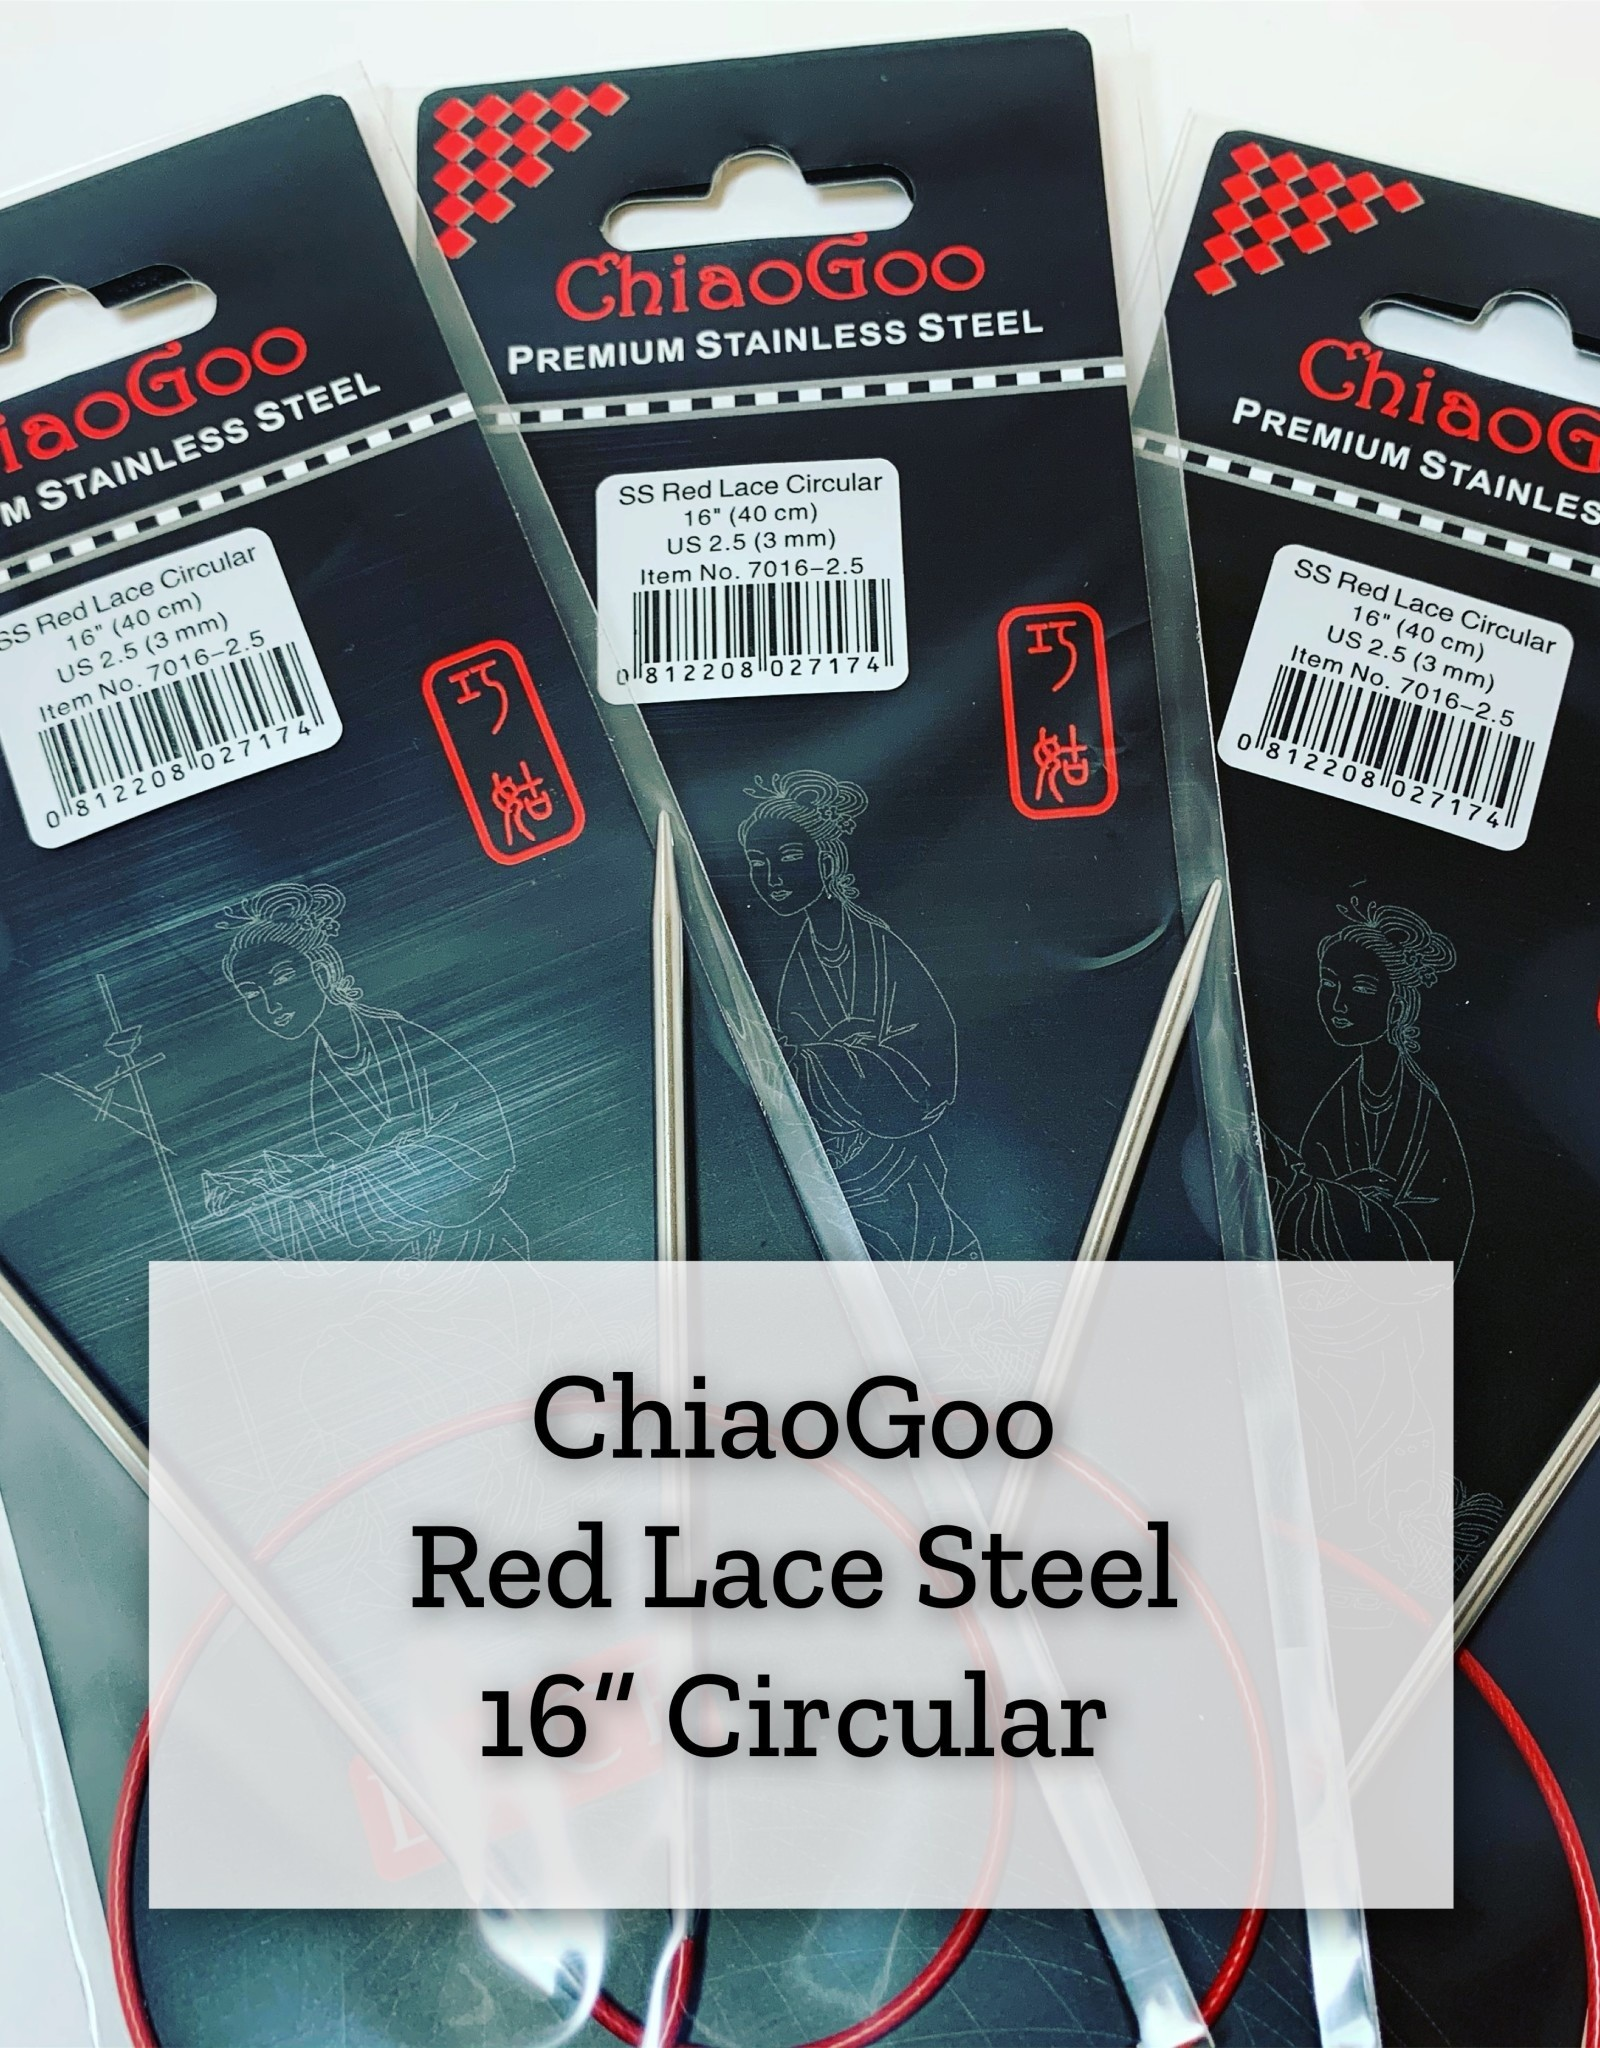 "ChiaoGoo Red Lace Steel - 16"" 4 mm"